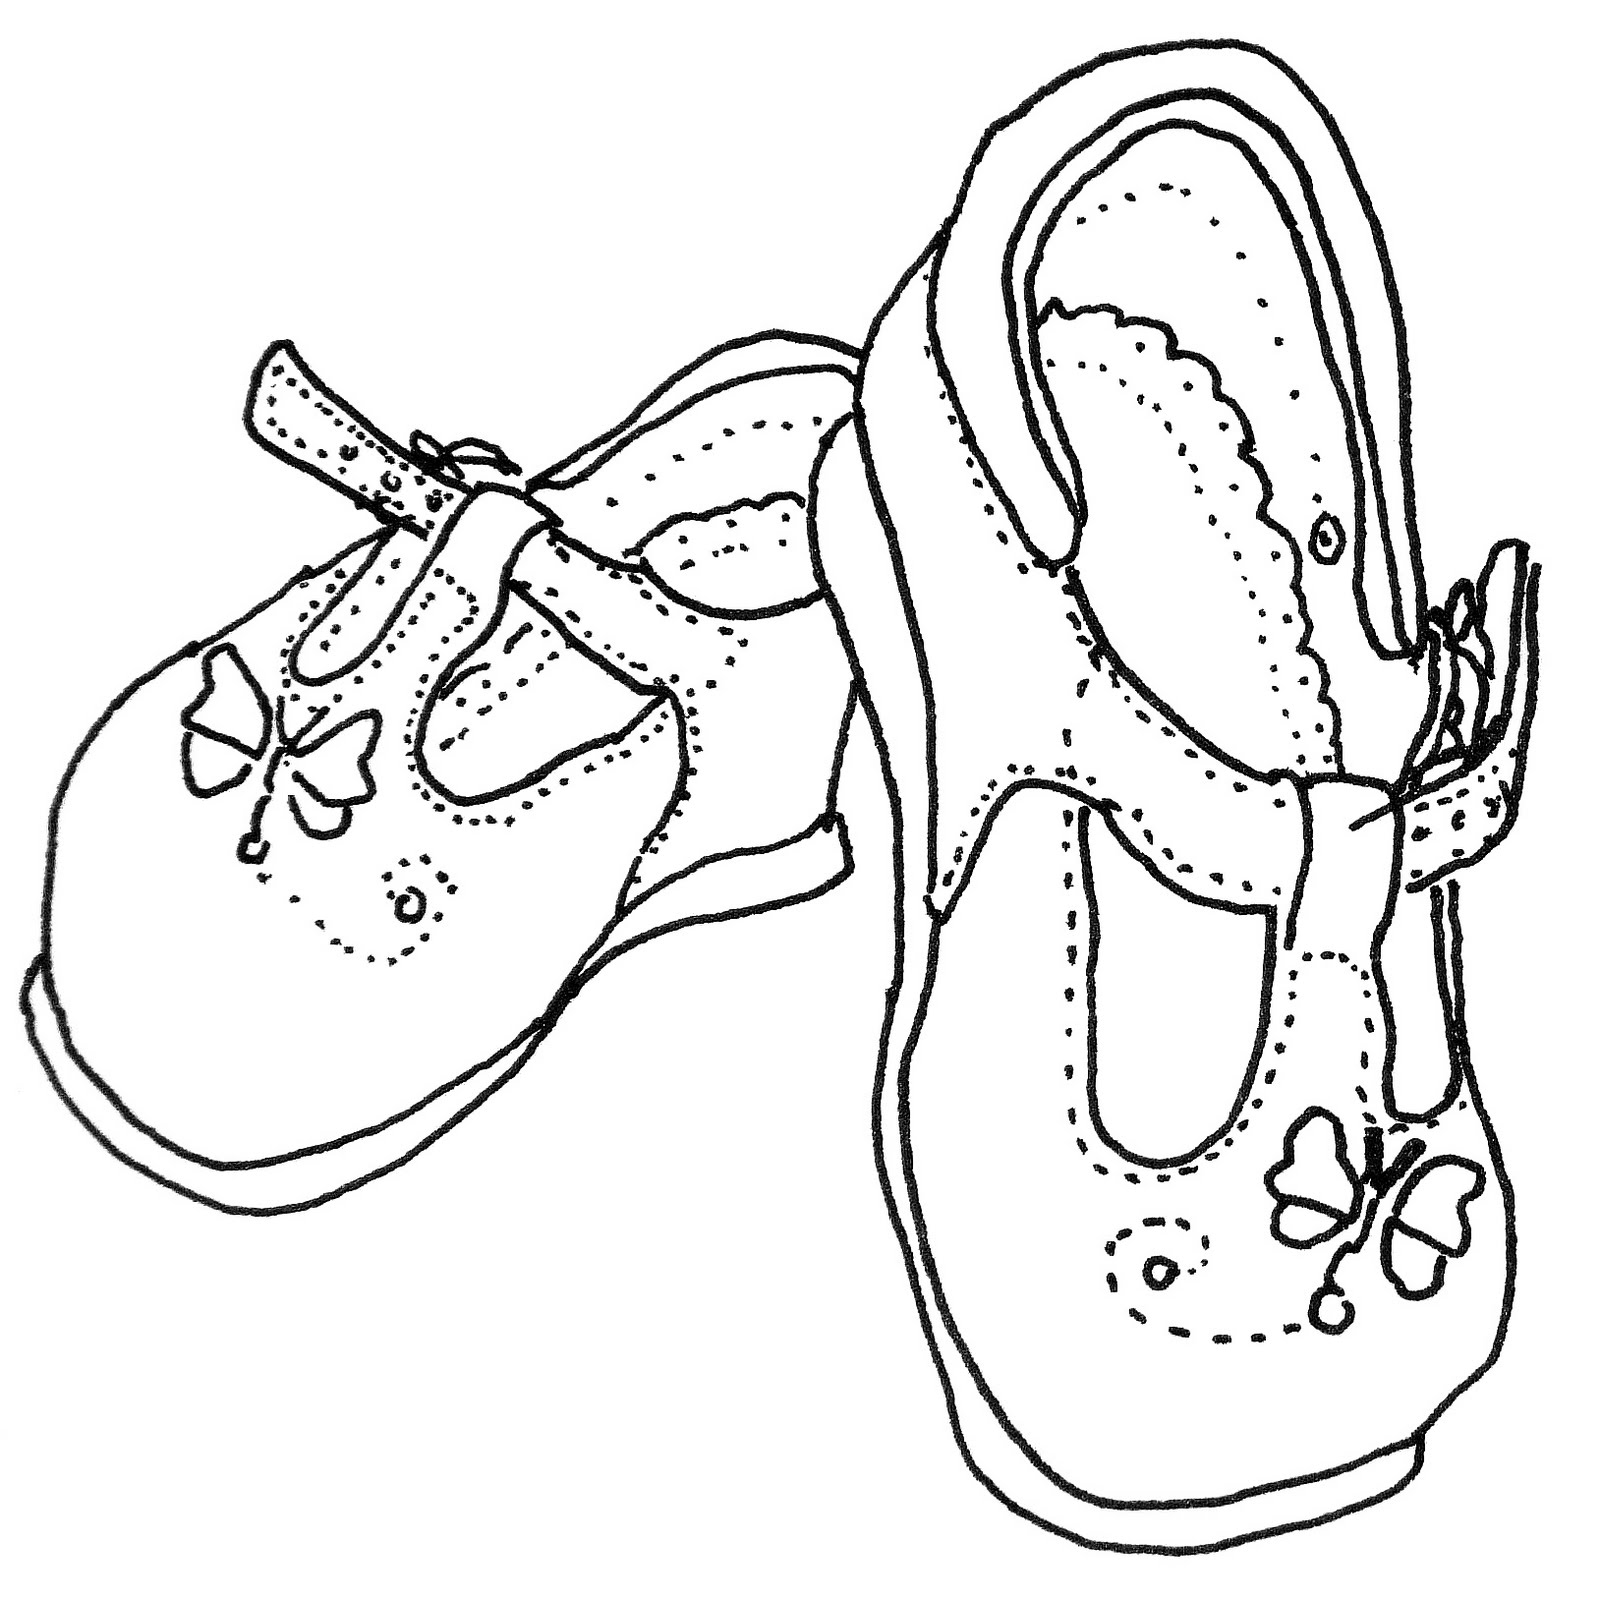 Easy Still Life Shoes Pencil Drawing By Mimie8 On Deviantart